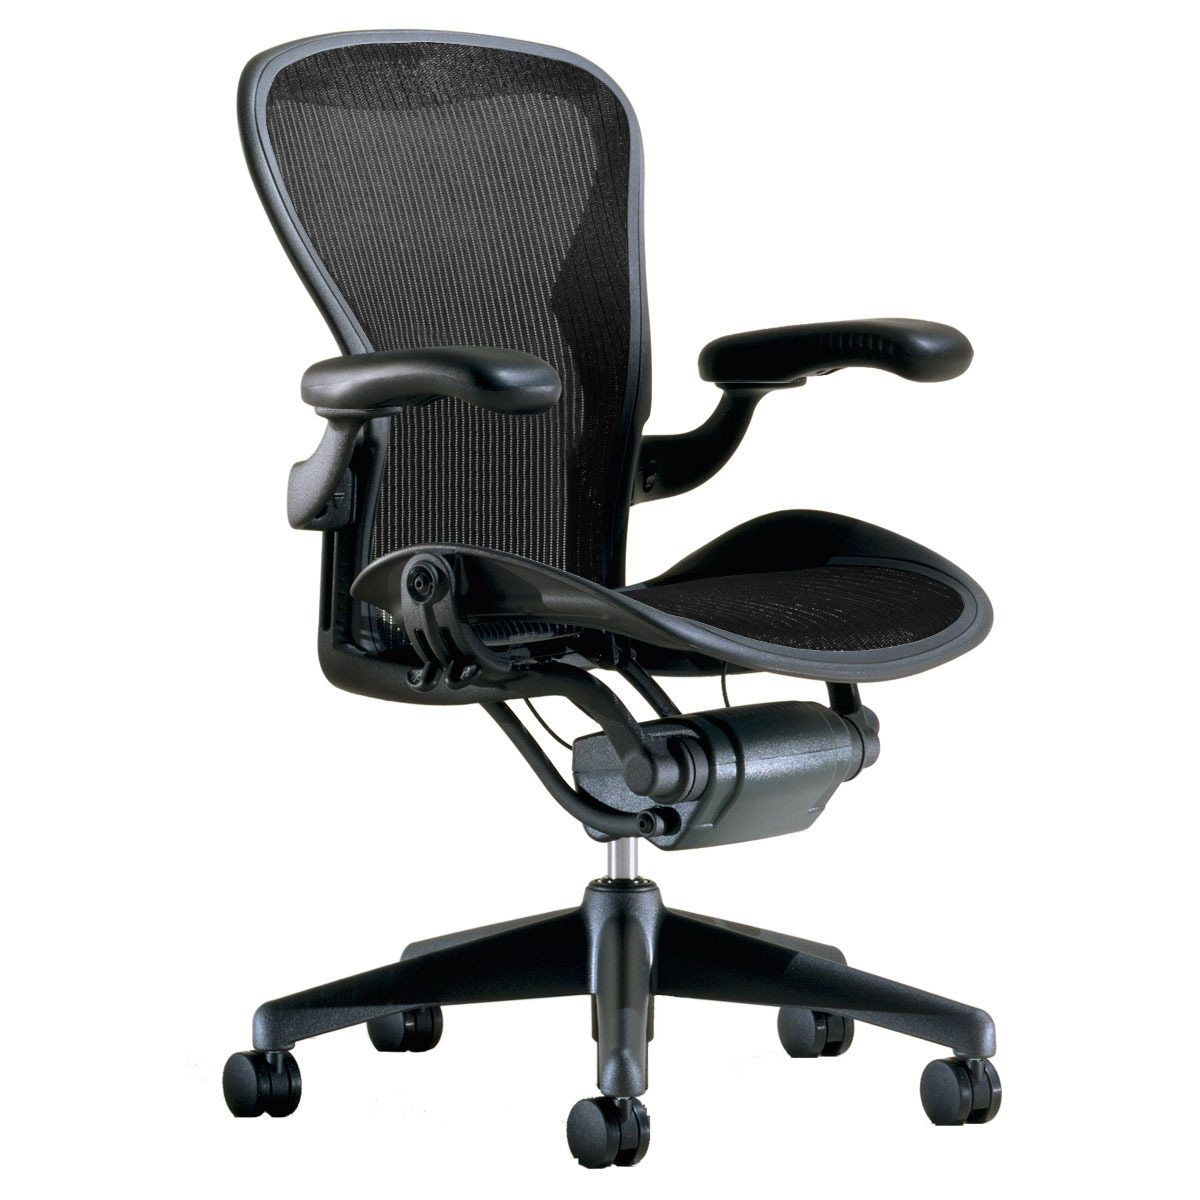 Best Office Desk Chair - Home Office Furniture Desk Check more at ...